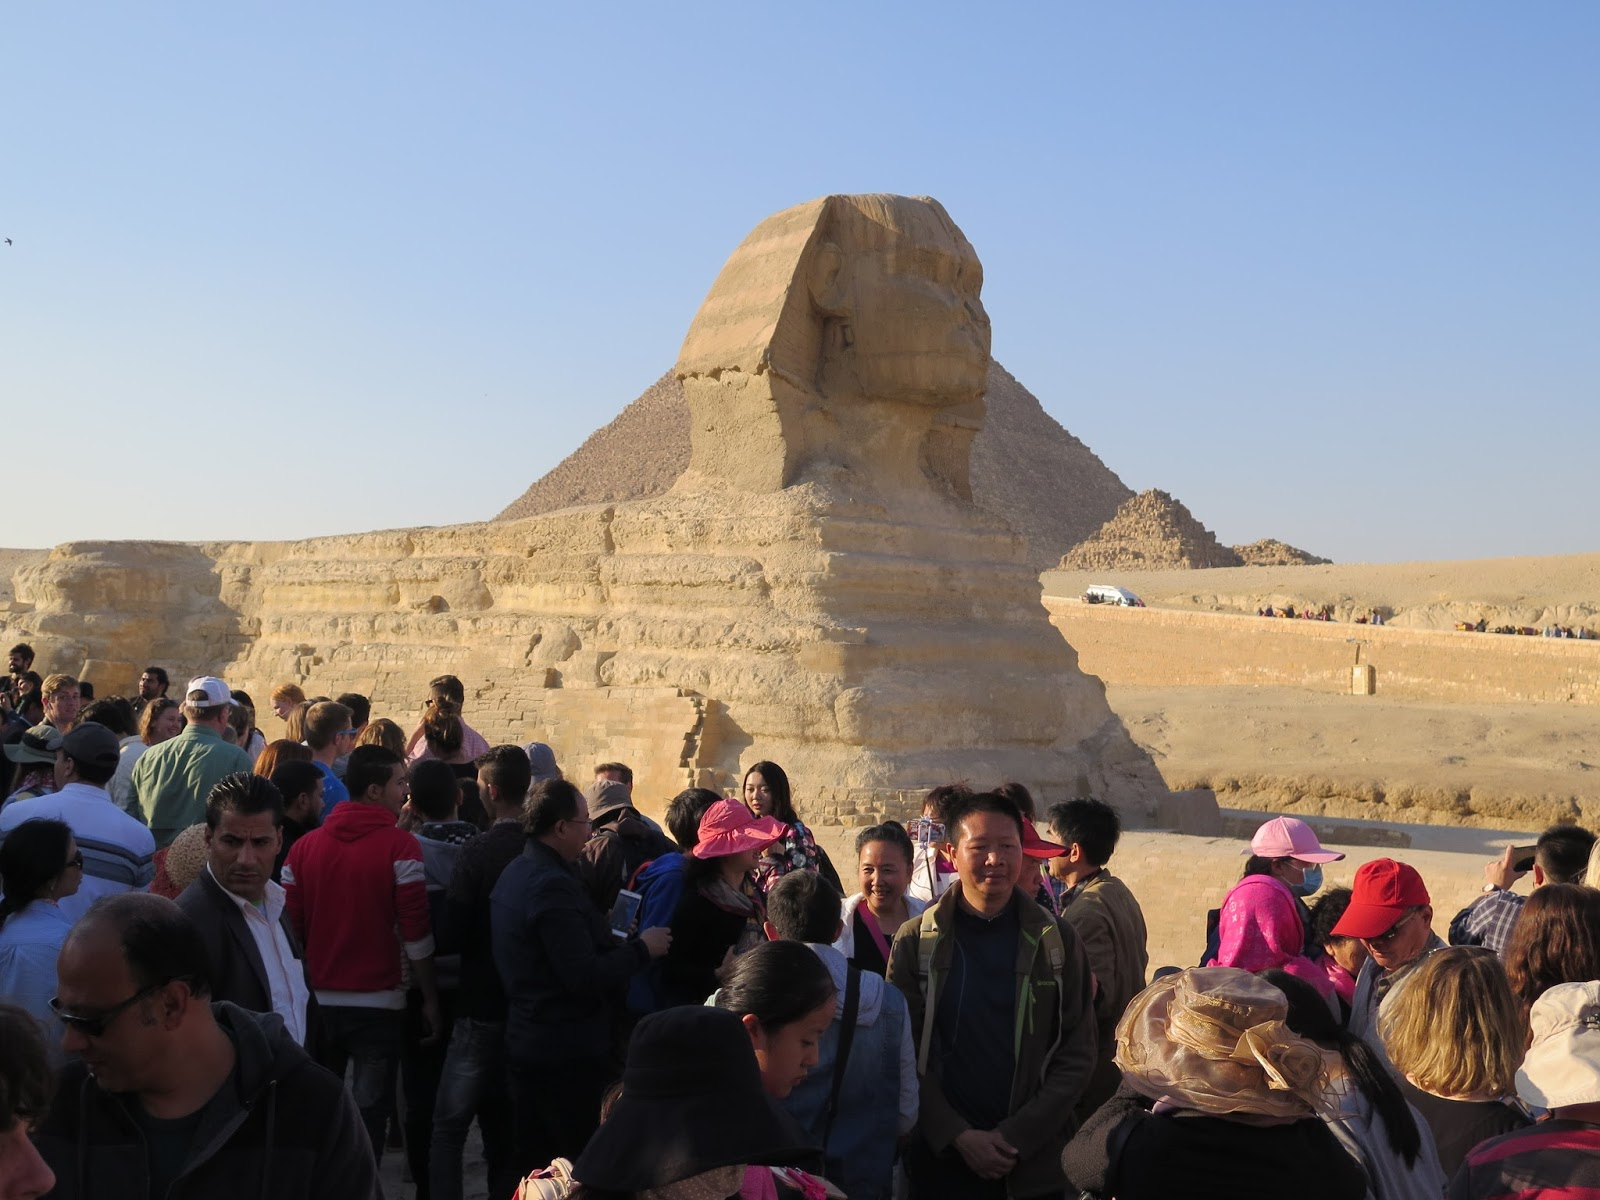 It\u0027s really difficult to show in photos how immense the Sphinx is and you have to be there to experience it. & The Holyoaks in the Holy Land: Egypt: Giza Pyramids and the Sphinx